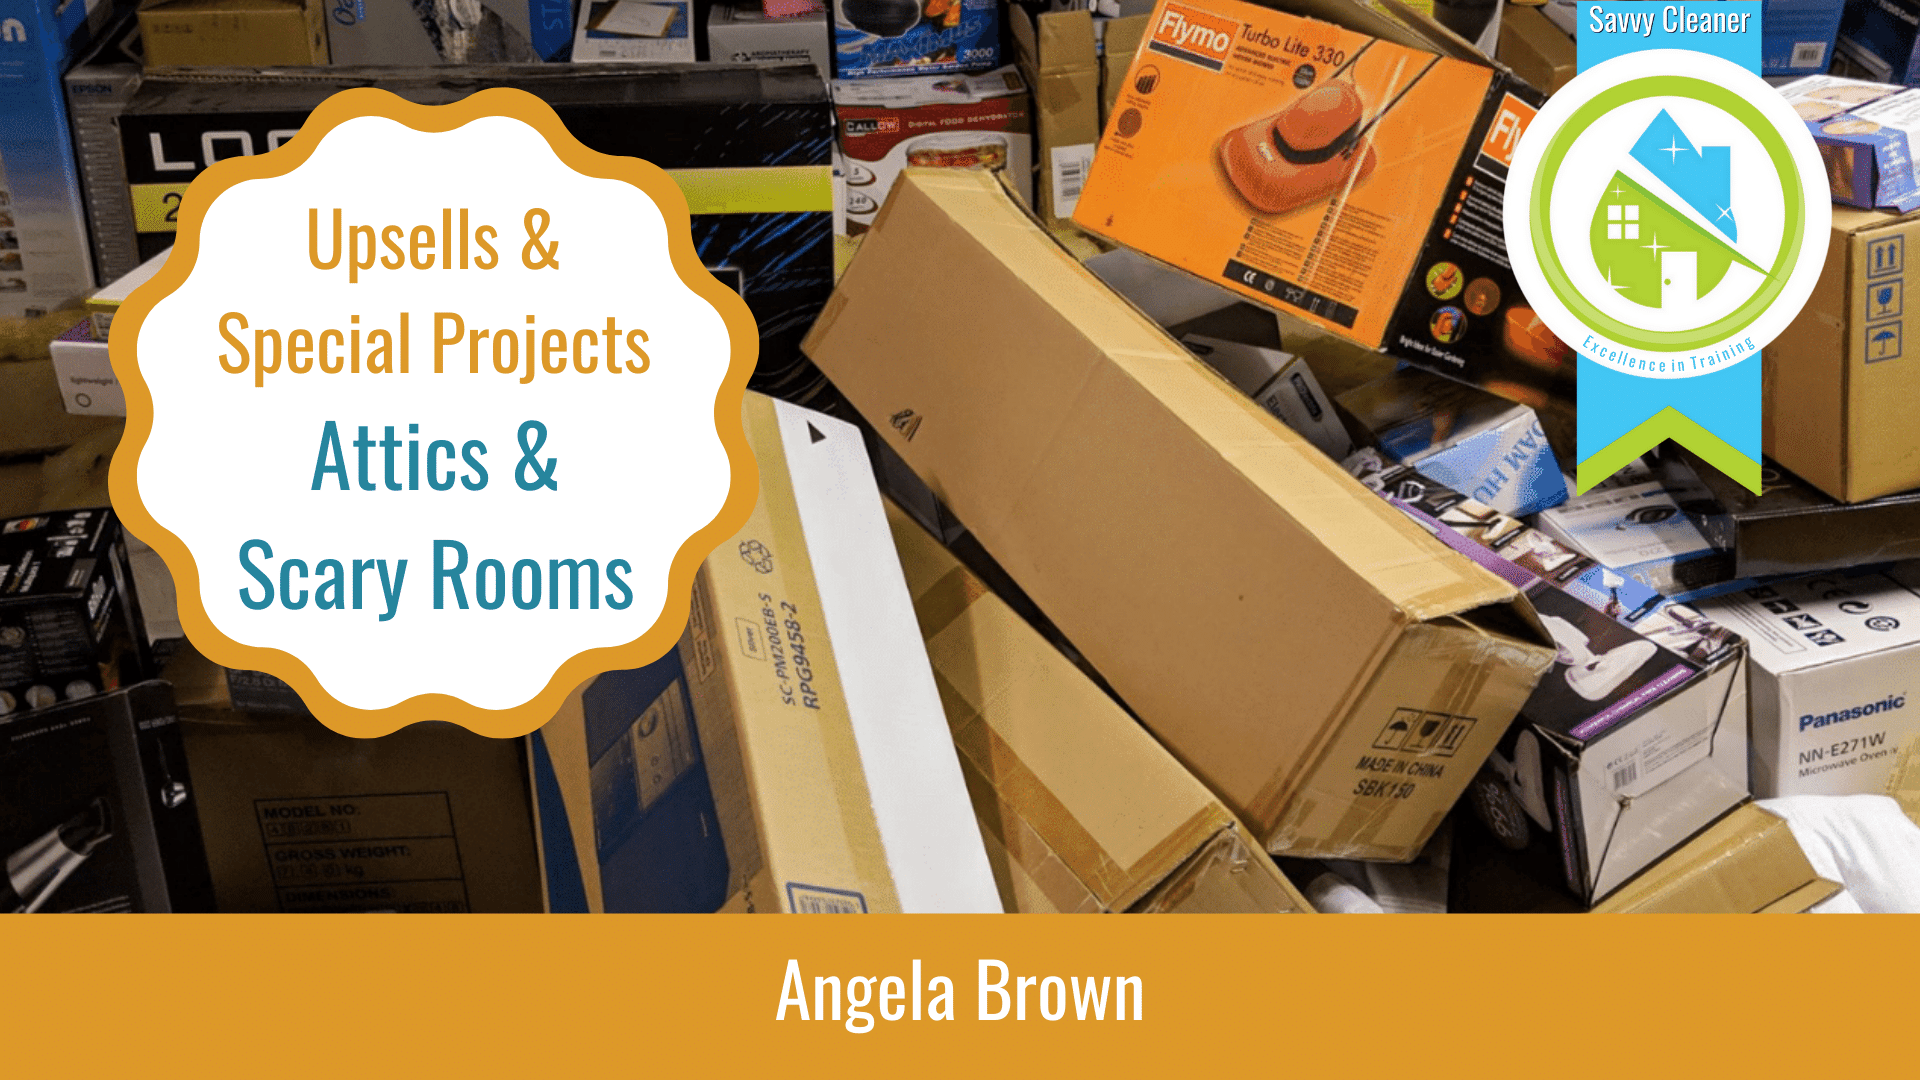 Upsells and Special Projects Attics & Scary Rooms